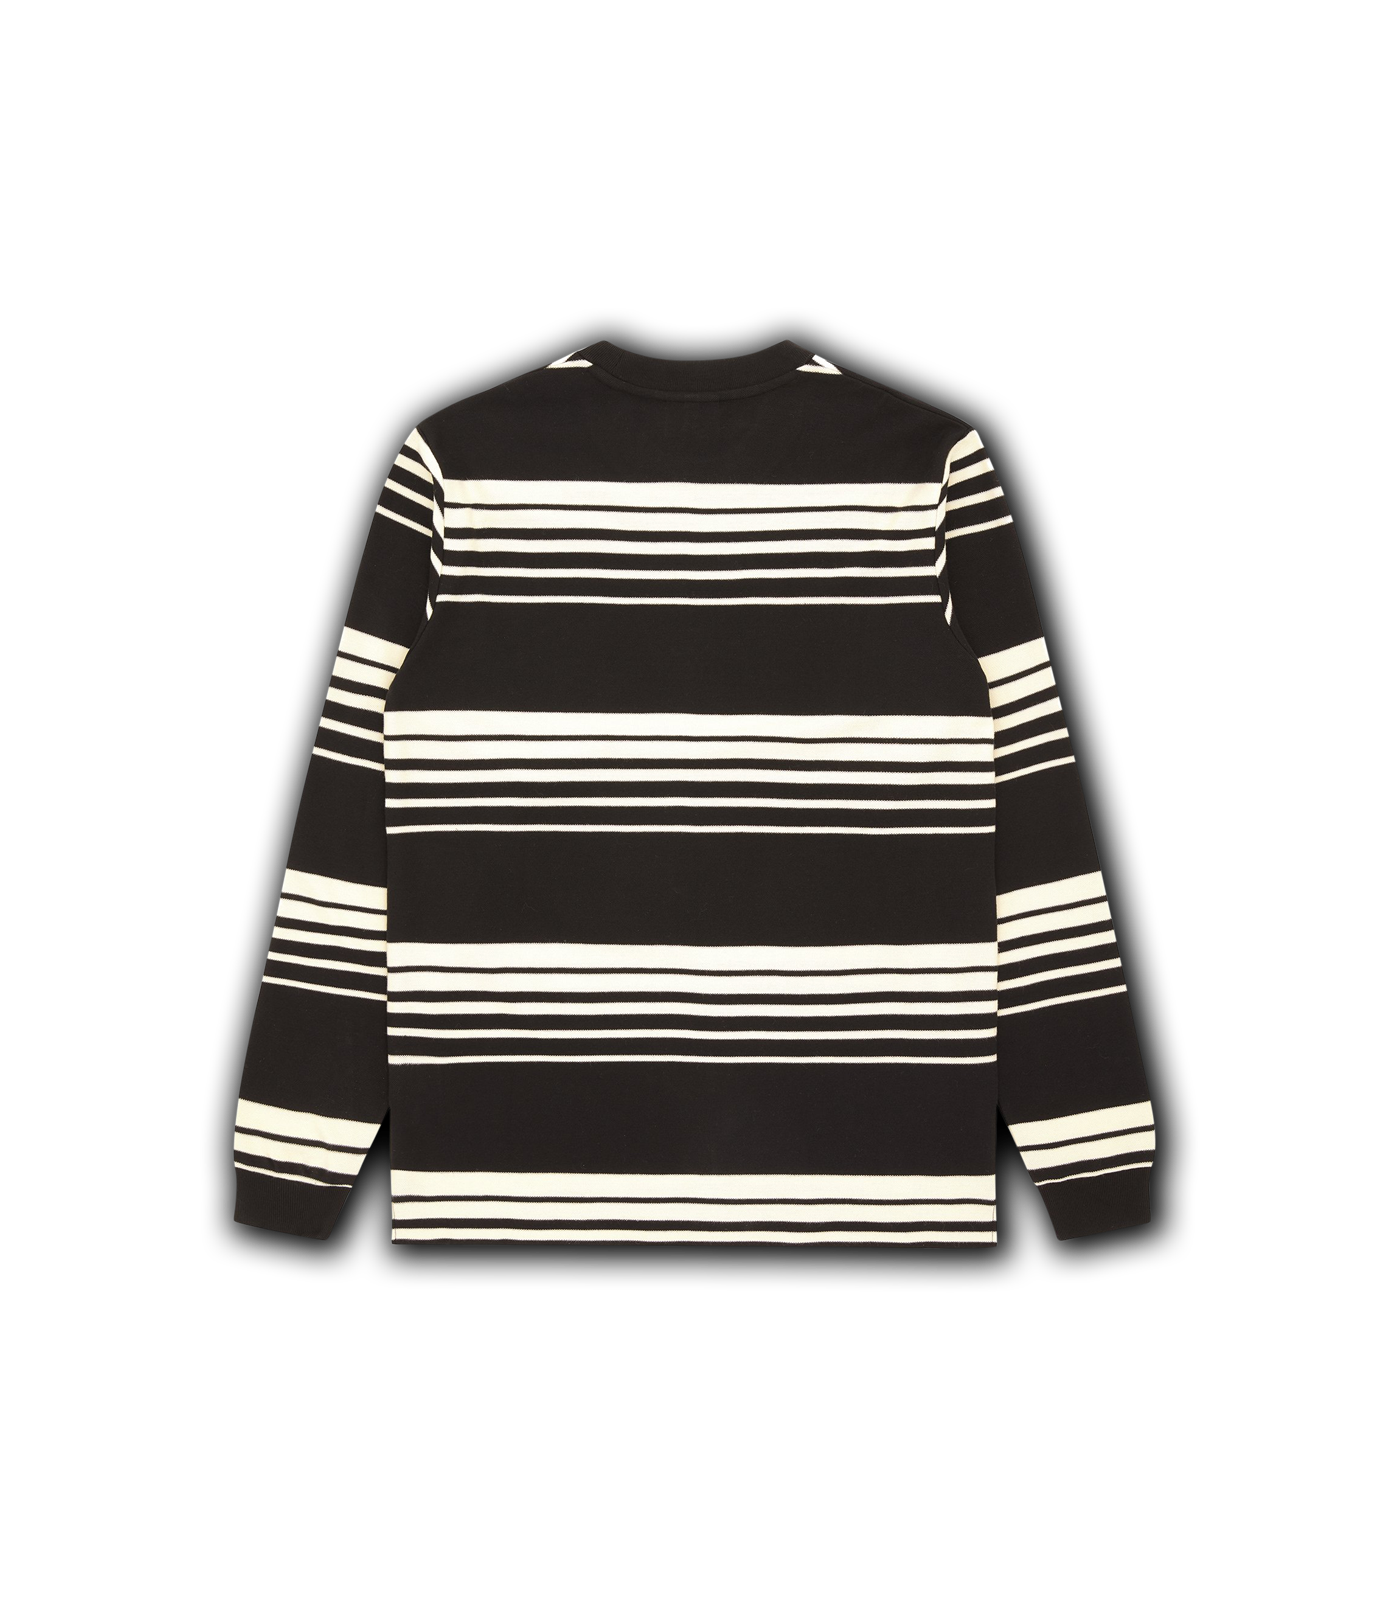 STRIPE KNIT L/S T-SHIRT - BLACK